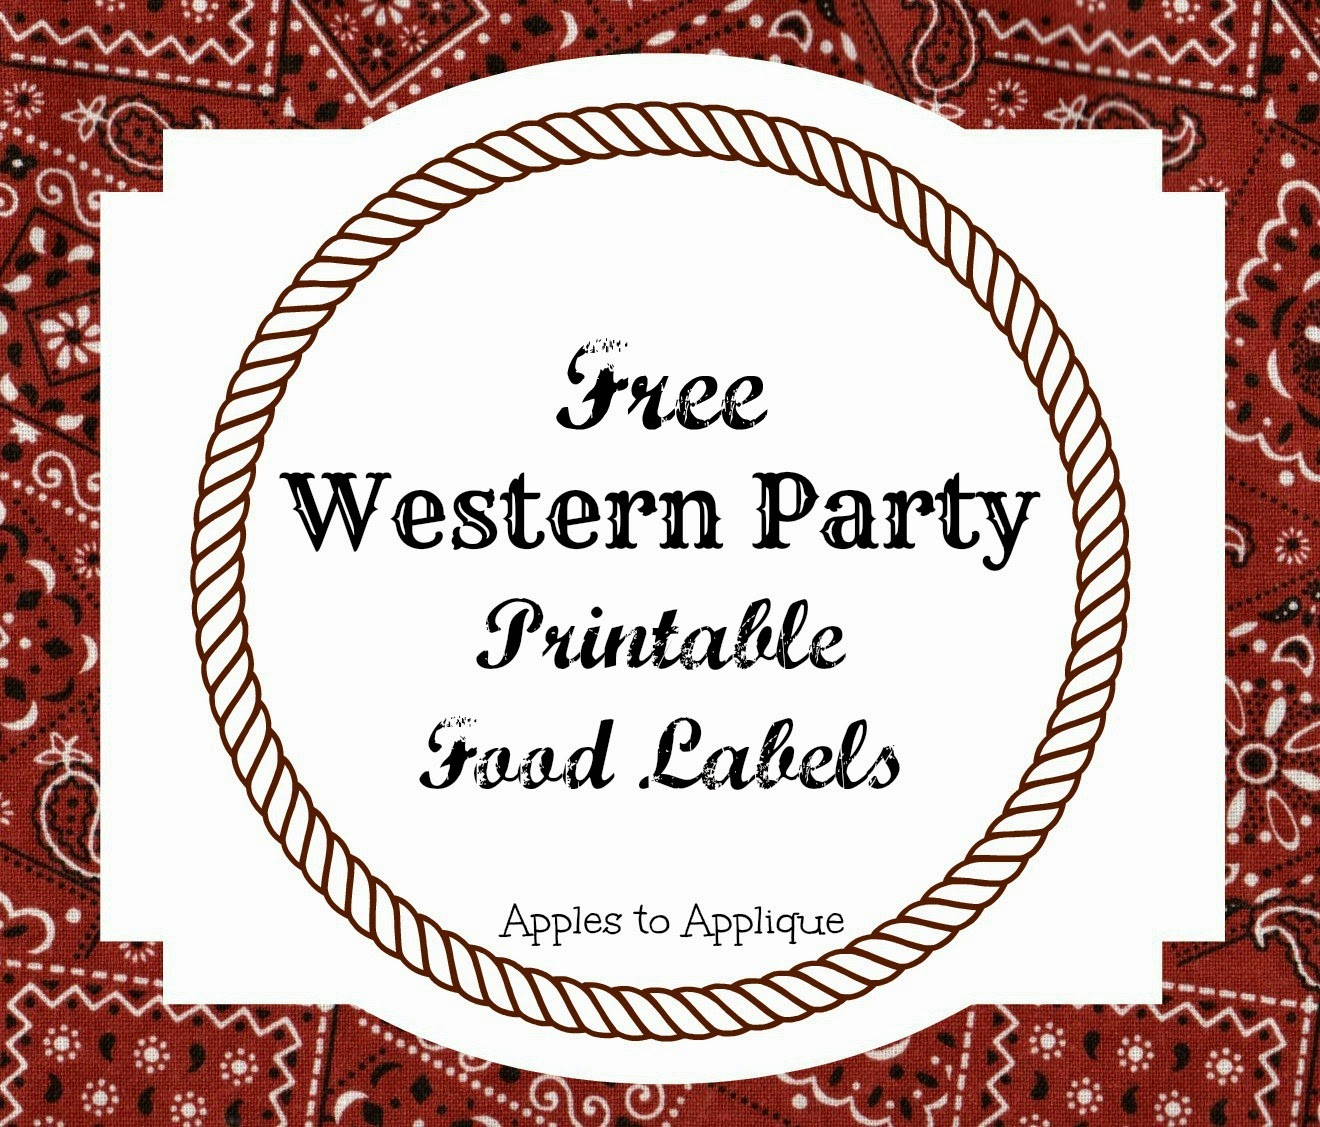 photo relating to Free Printable Food Labels named Apples toward Applique: Western Occasion: Foodstuff Labels Totally free Printables